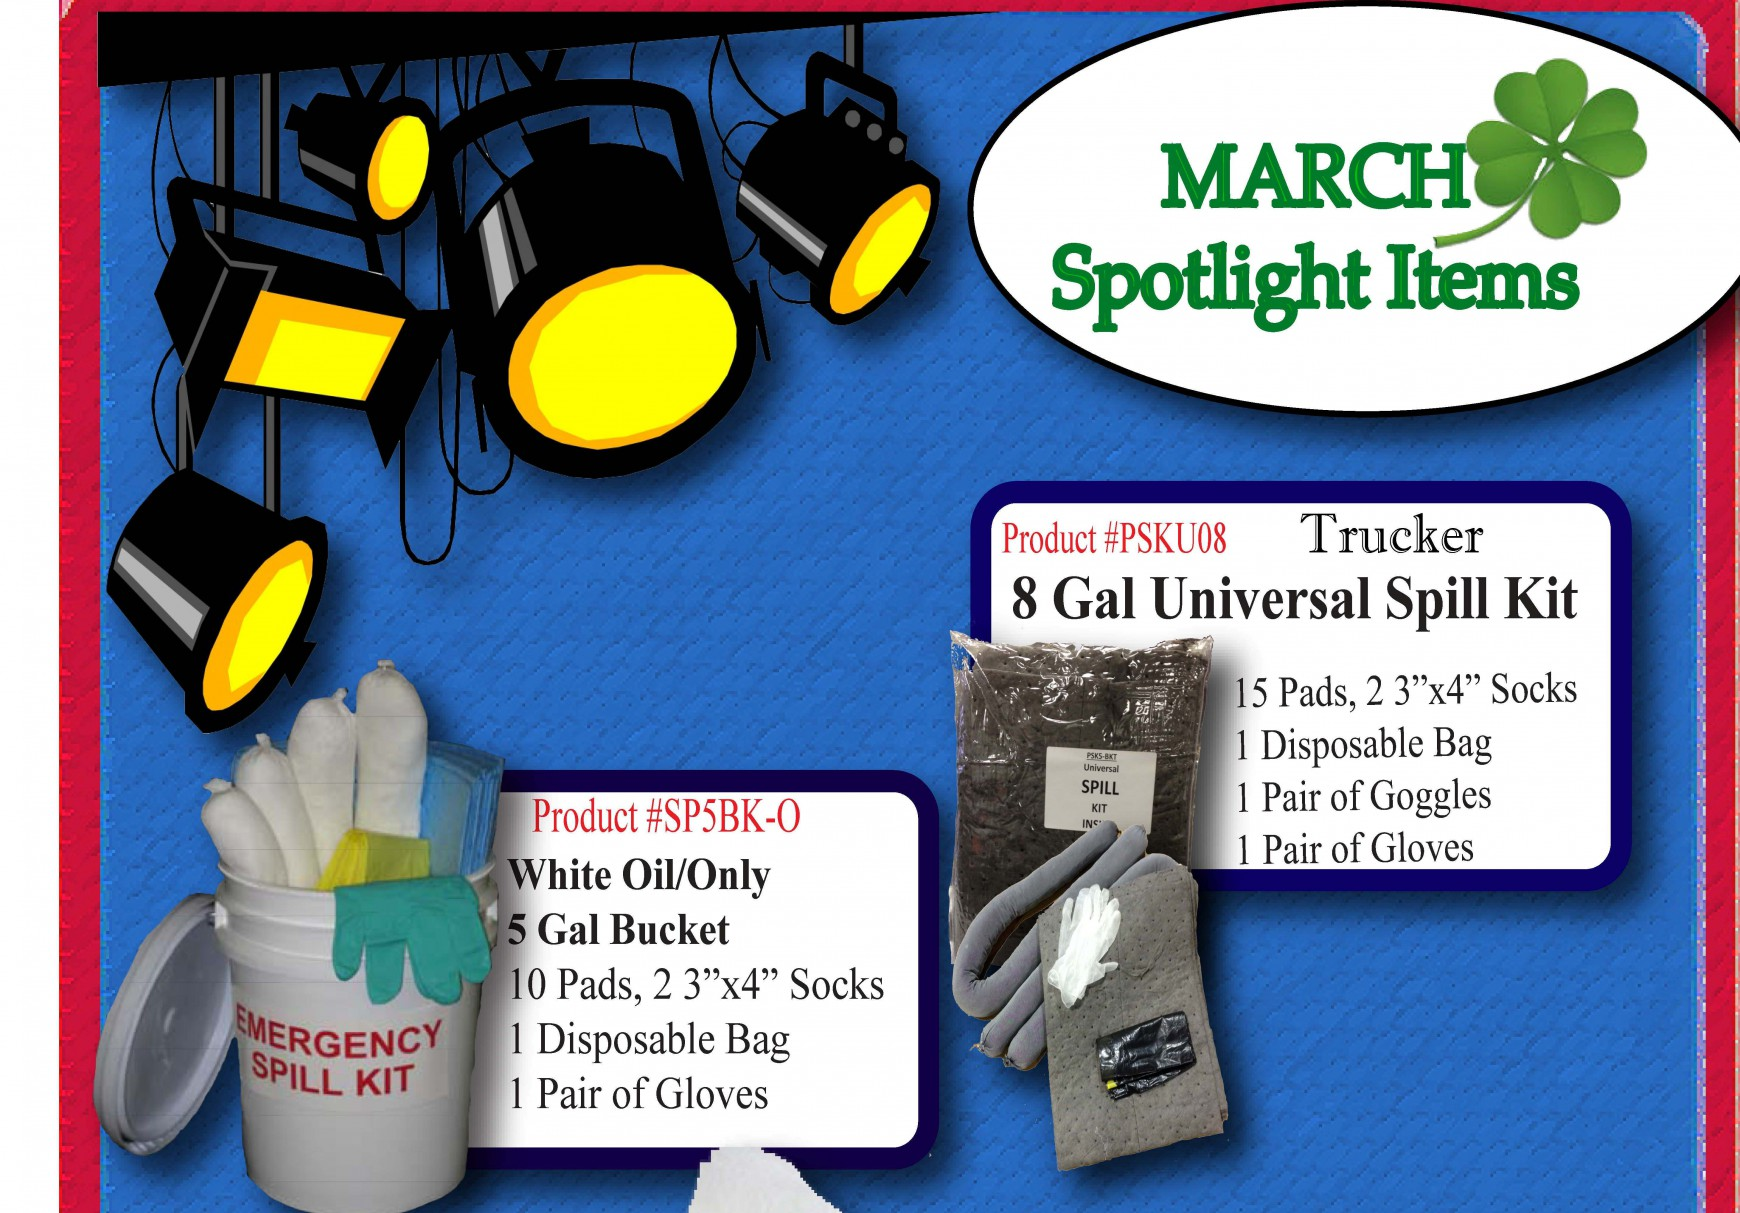 The Latest Specials on Shop Rags and Absorbants